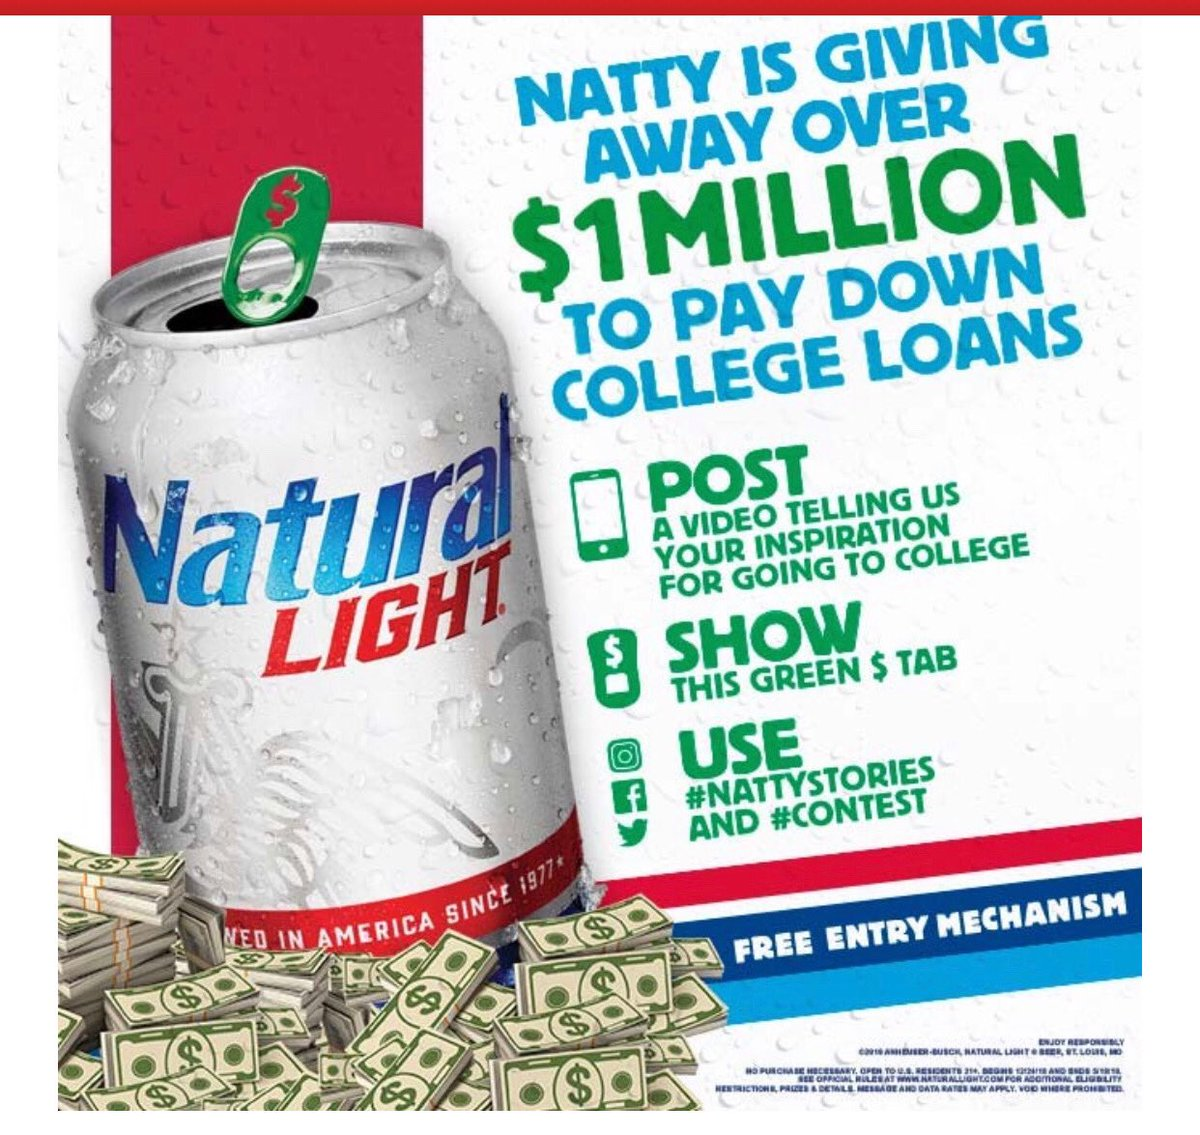 Natty Light giving away $1M to do its part to help pay down college loans. 12 winners will get $40,000, 58 winners get $10,000 each.